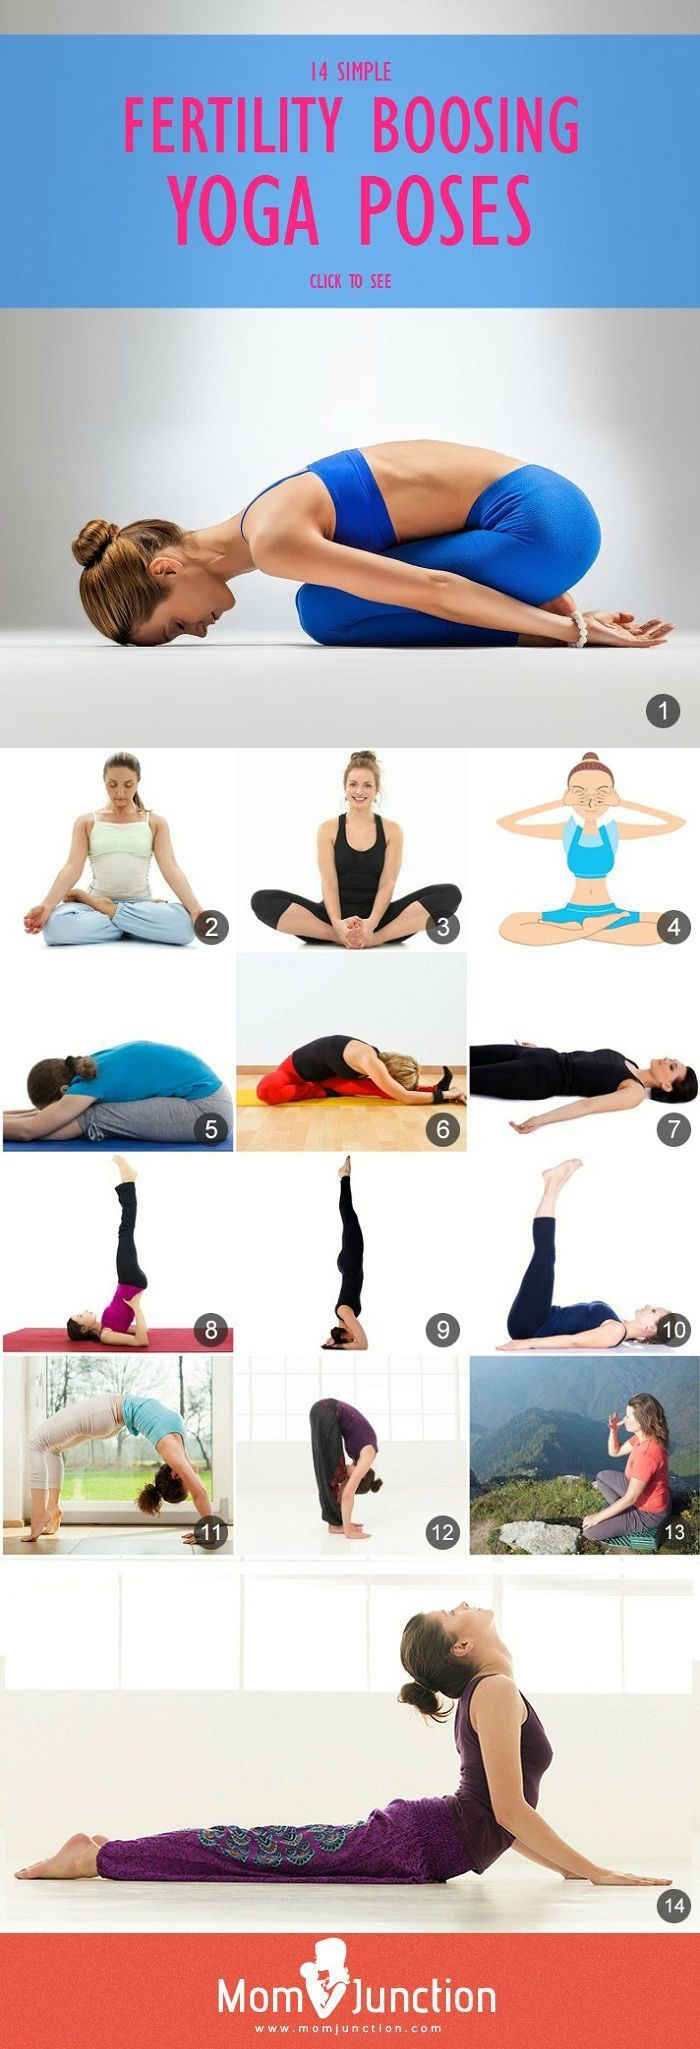 Yoga for Fertility: @momjunction says doing yoga everyday enhances the body functioning and balances the mental state. With Yoga, not only your stress level comes down but emotional and hormonal balance is also achieved.These simple yet powerful fertility #yoga poses should be practiced on a routine basis.